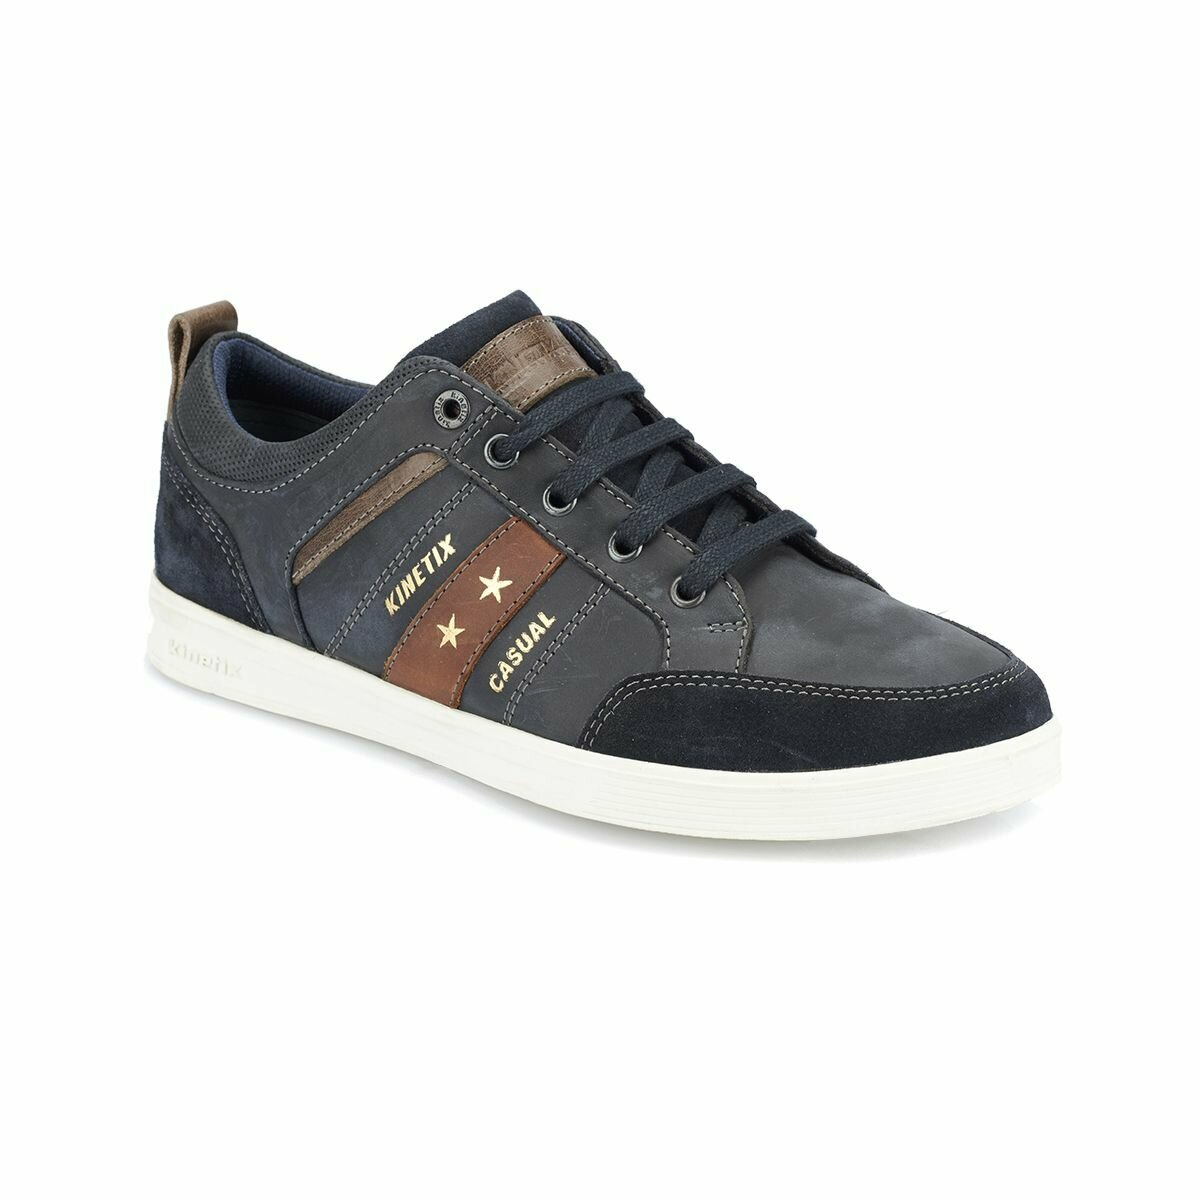 FLO NEONA Navy Blue Men 'S Shoes KINETIX